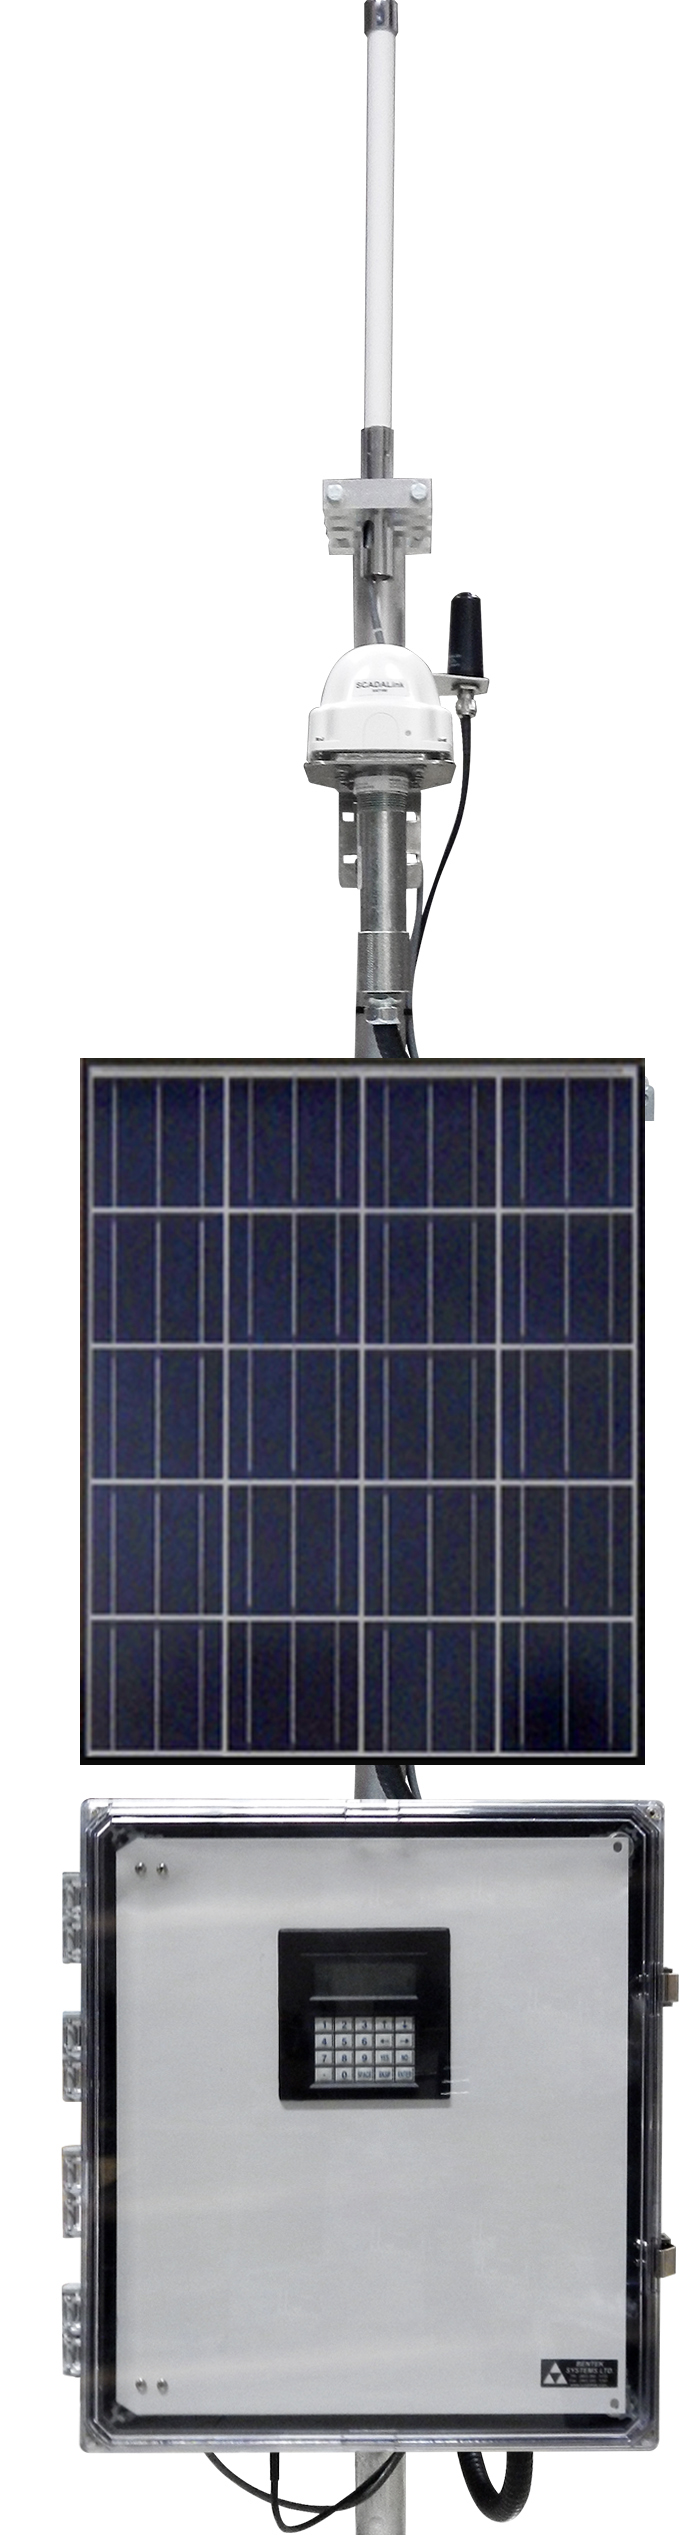 SAT130 GATEWAY-SOLAR RTU-Local Display 2